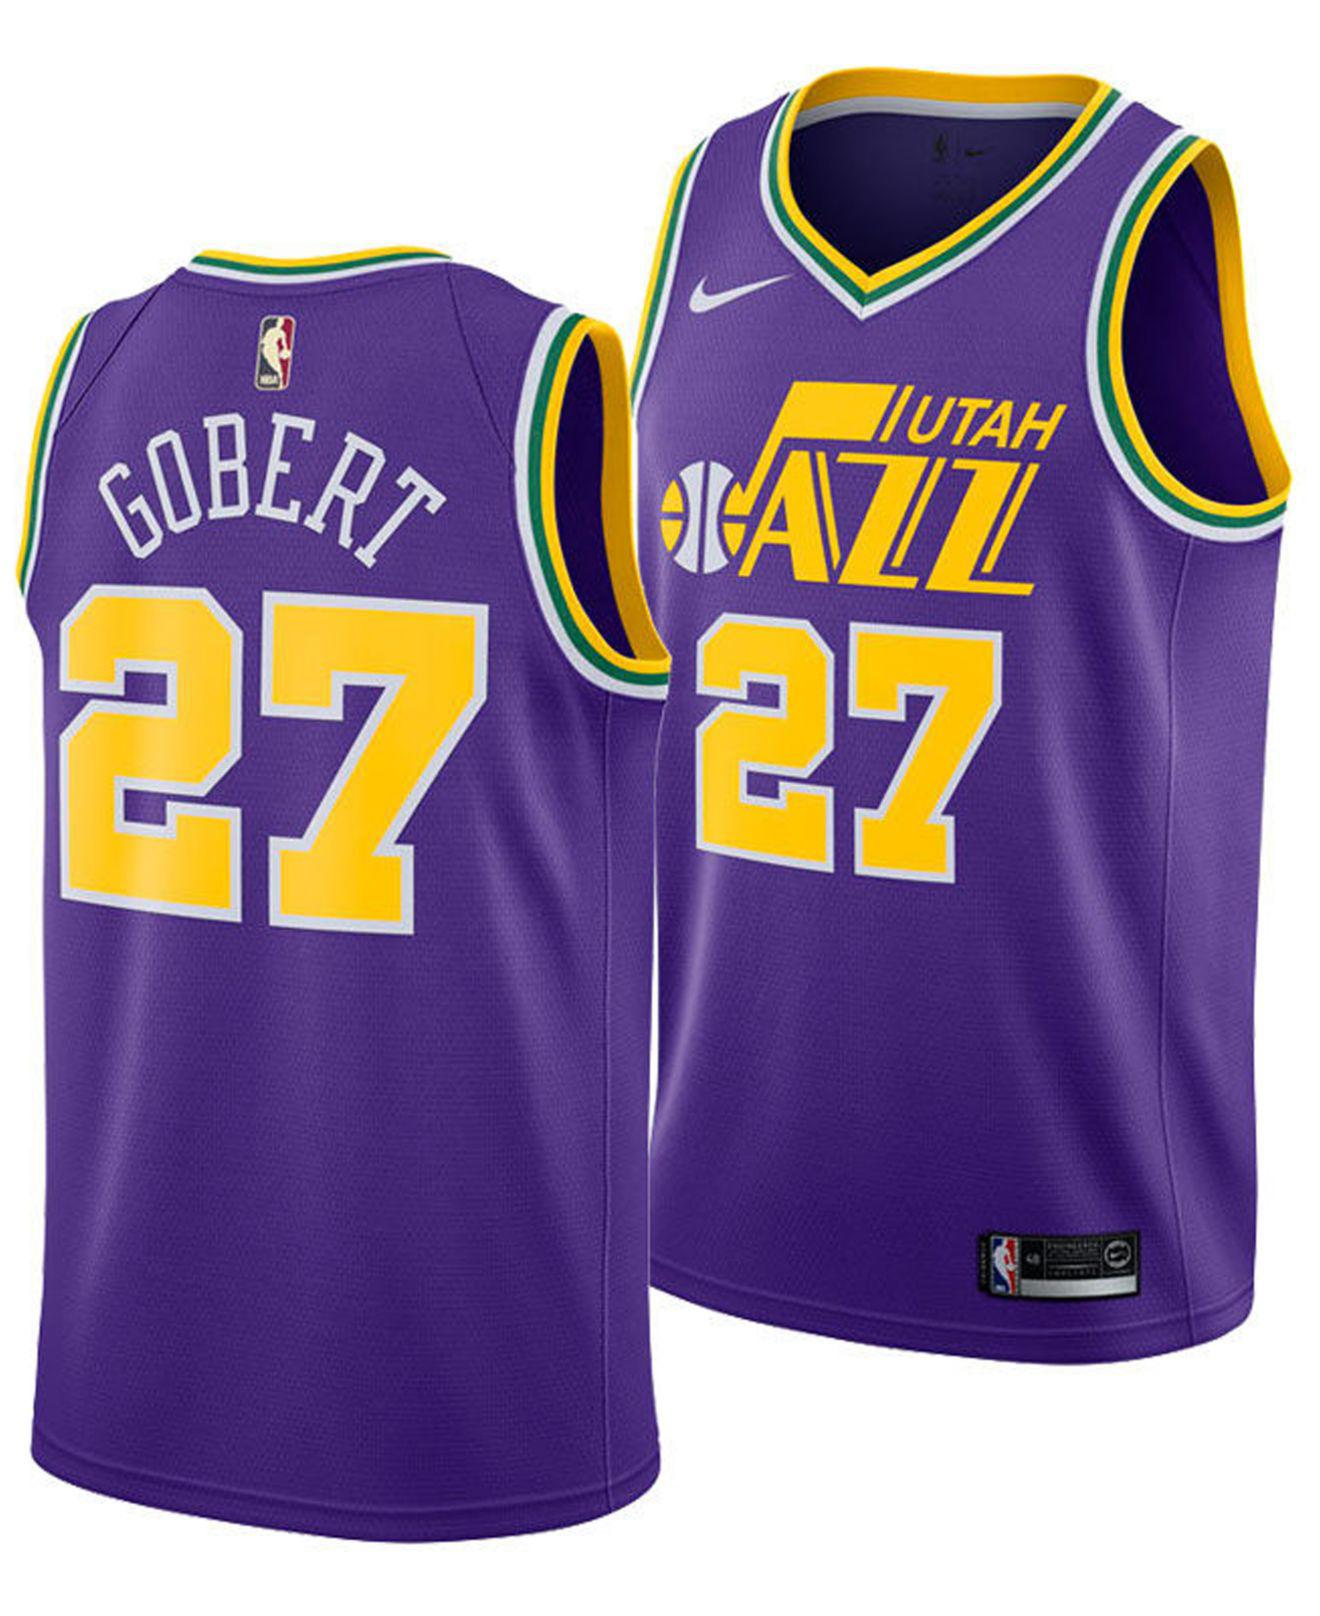 fdf36371b26 ... shopping nike. mens purple rudy gobert utah jazz hardwood classic swingman  jersey cbf79 dd44b